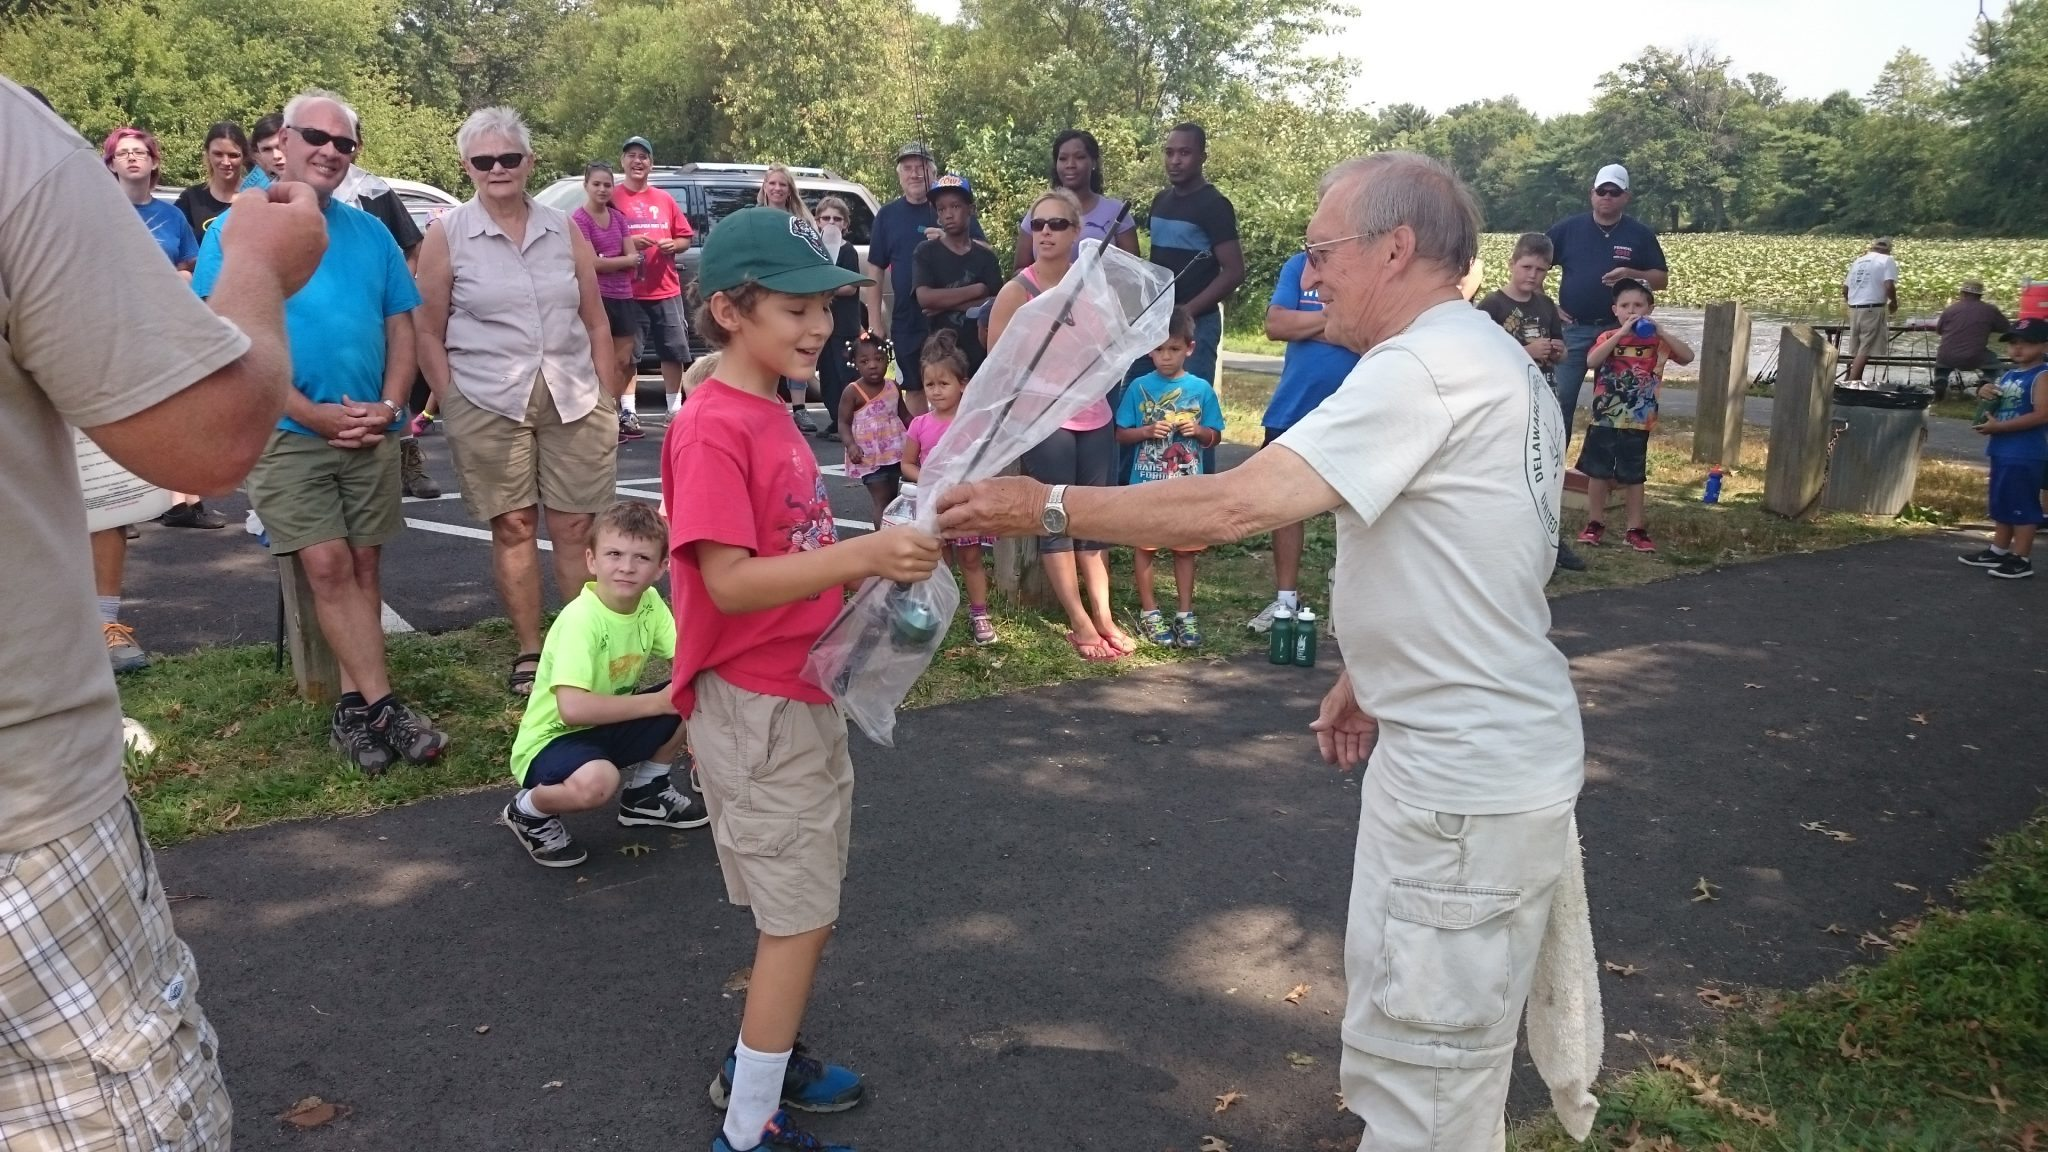 Silver Lake Nature Center Free Fishing Day Attracts More Than 100 Participants